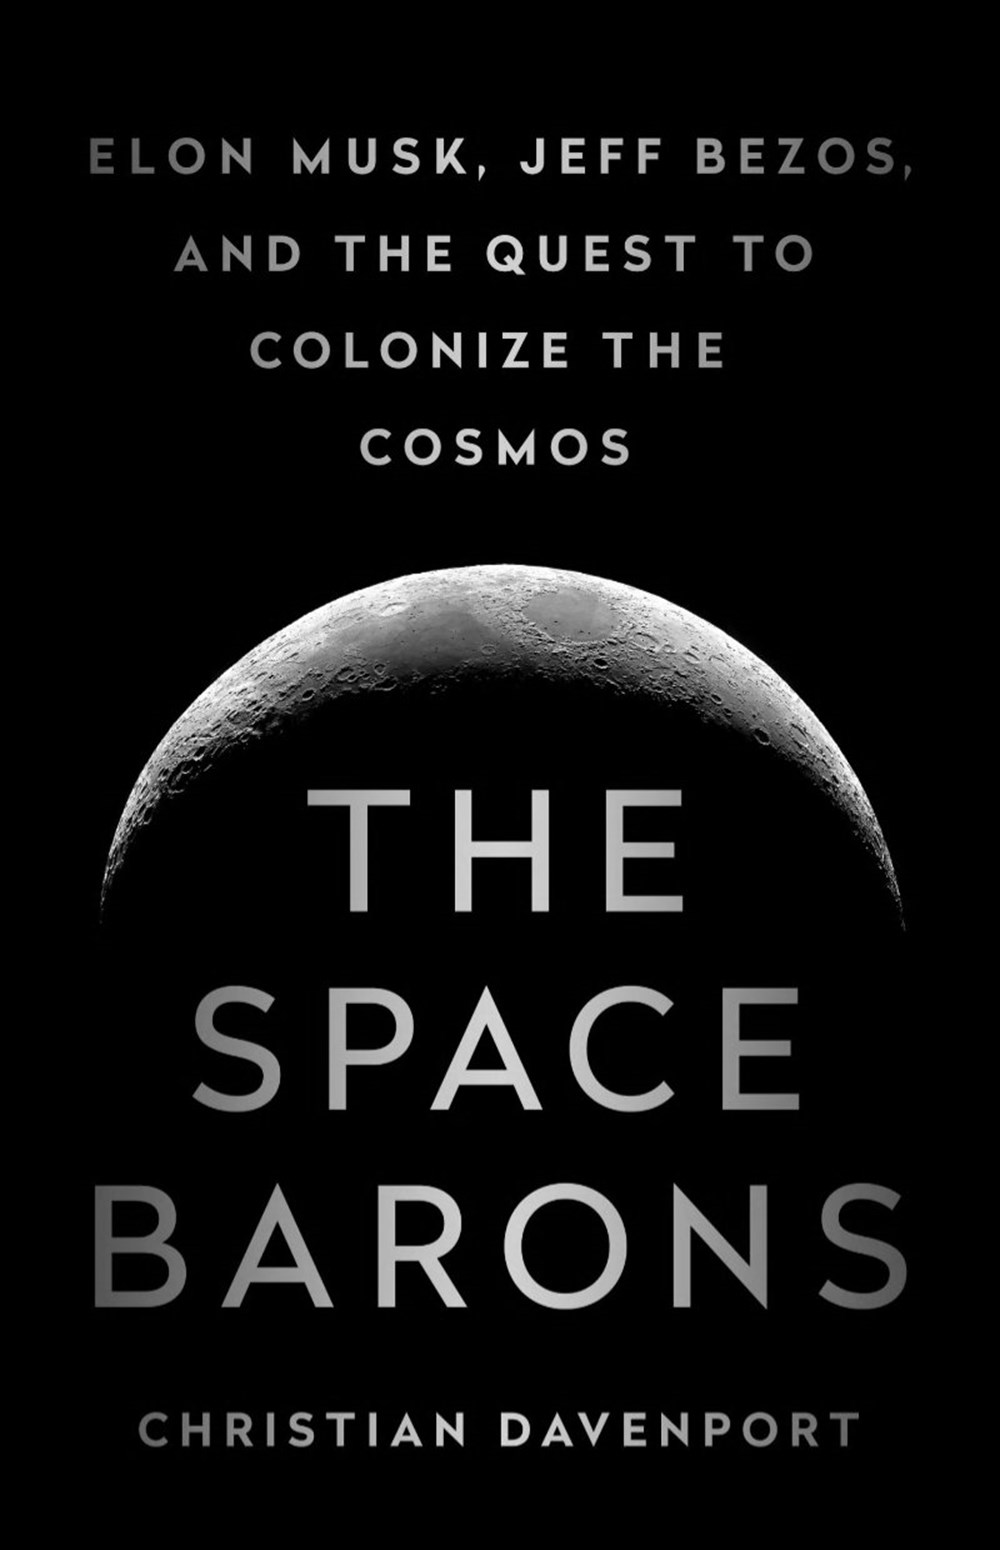 Space Barons Elon Musk, Jeff Bezos, and the Quest to Colonize the Cosmos